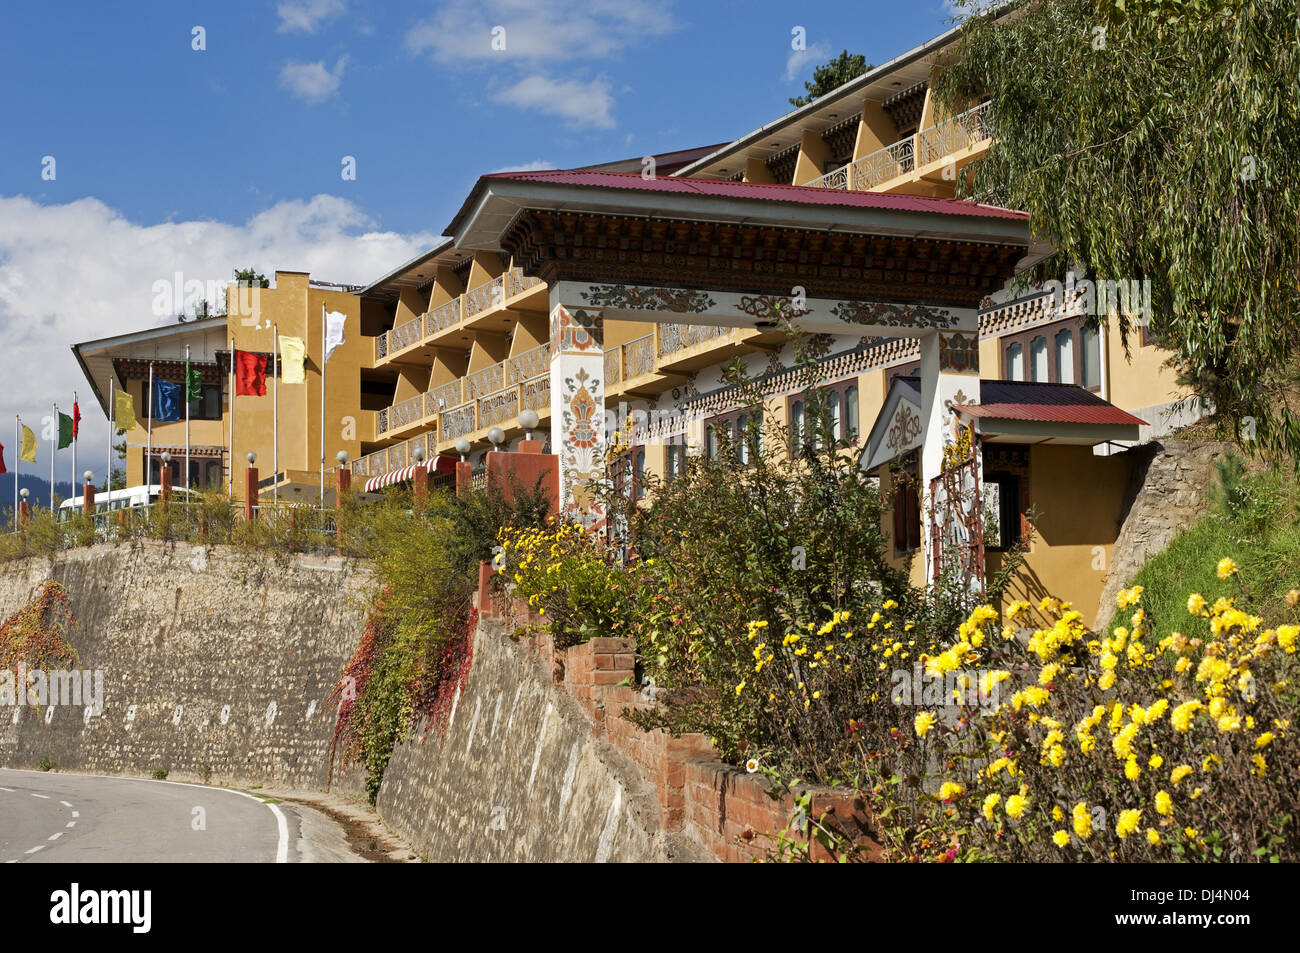 gate to the Riverview Hotel, Thimphu, Bhutan - Stock Image